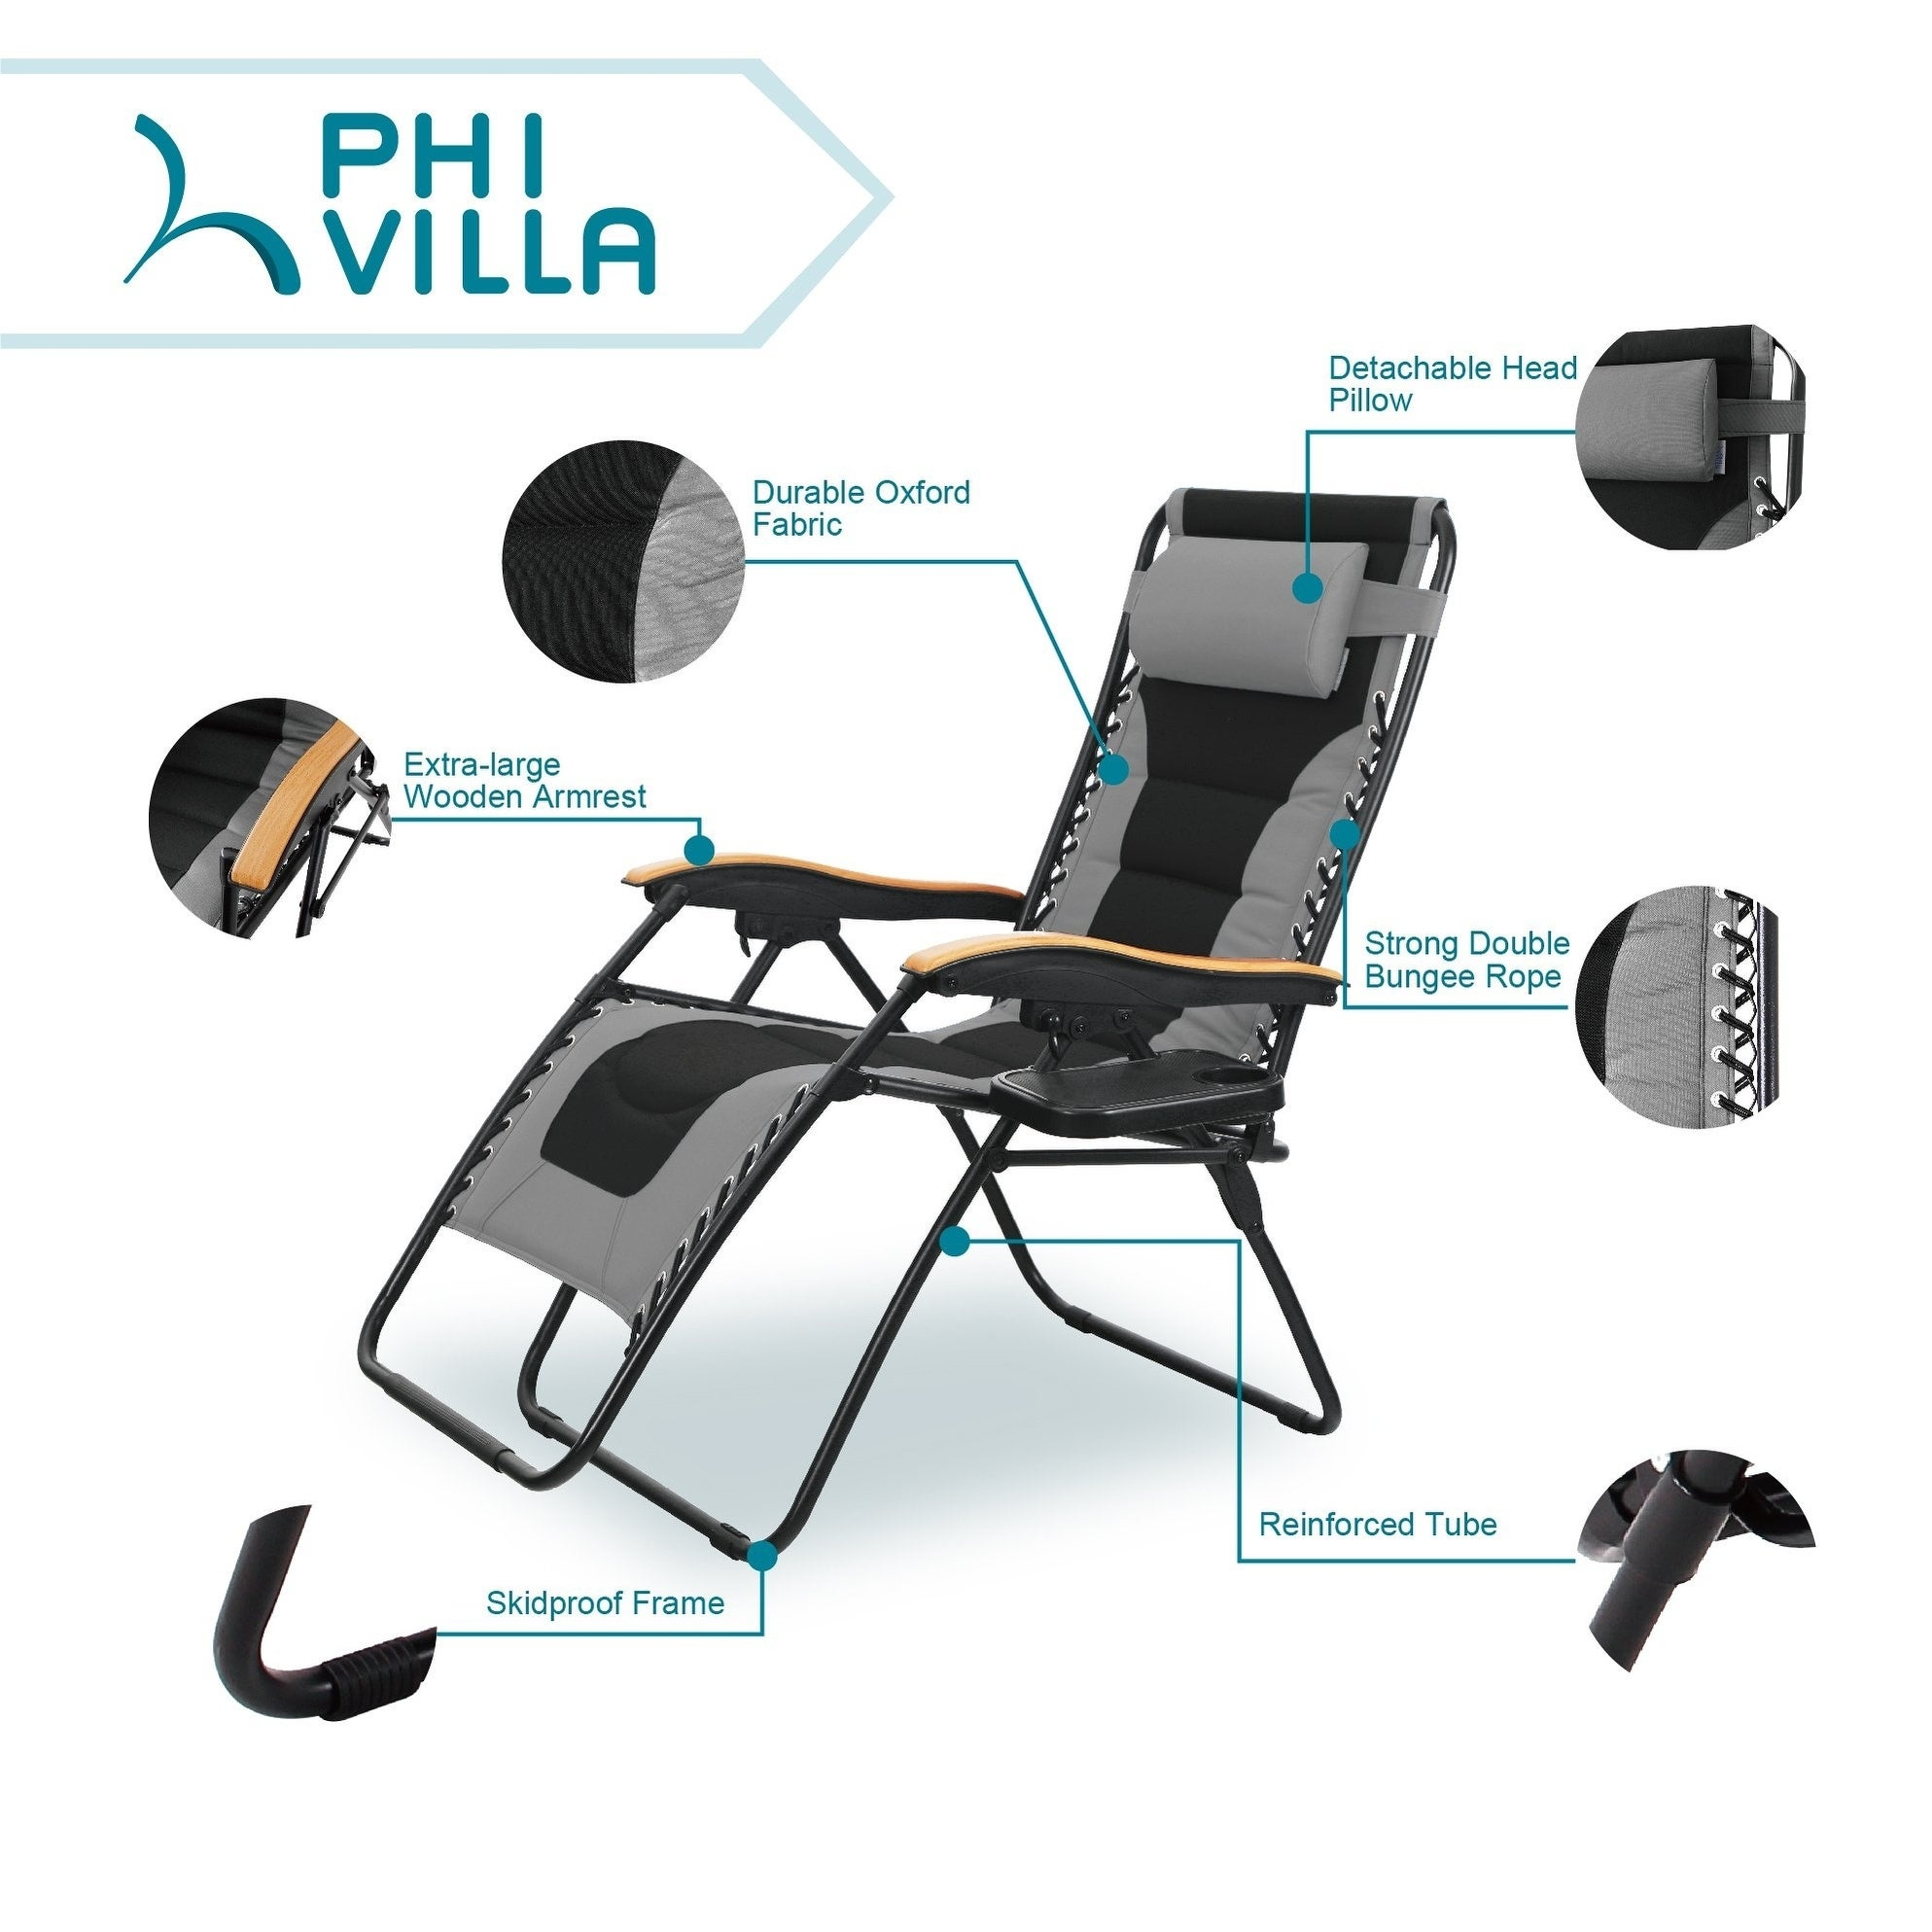 Phi Villa Oversize Xl Padded Zero Gravity Lounge Chair Wider Armrest Adjustable Recliner With Cup Holder Support 350 Lbs N A